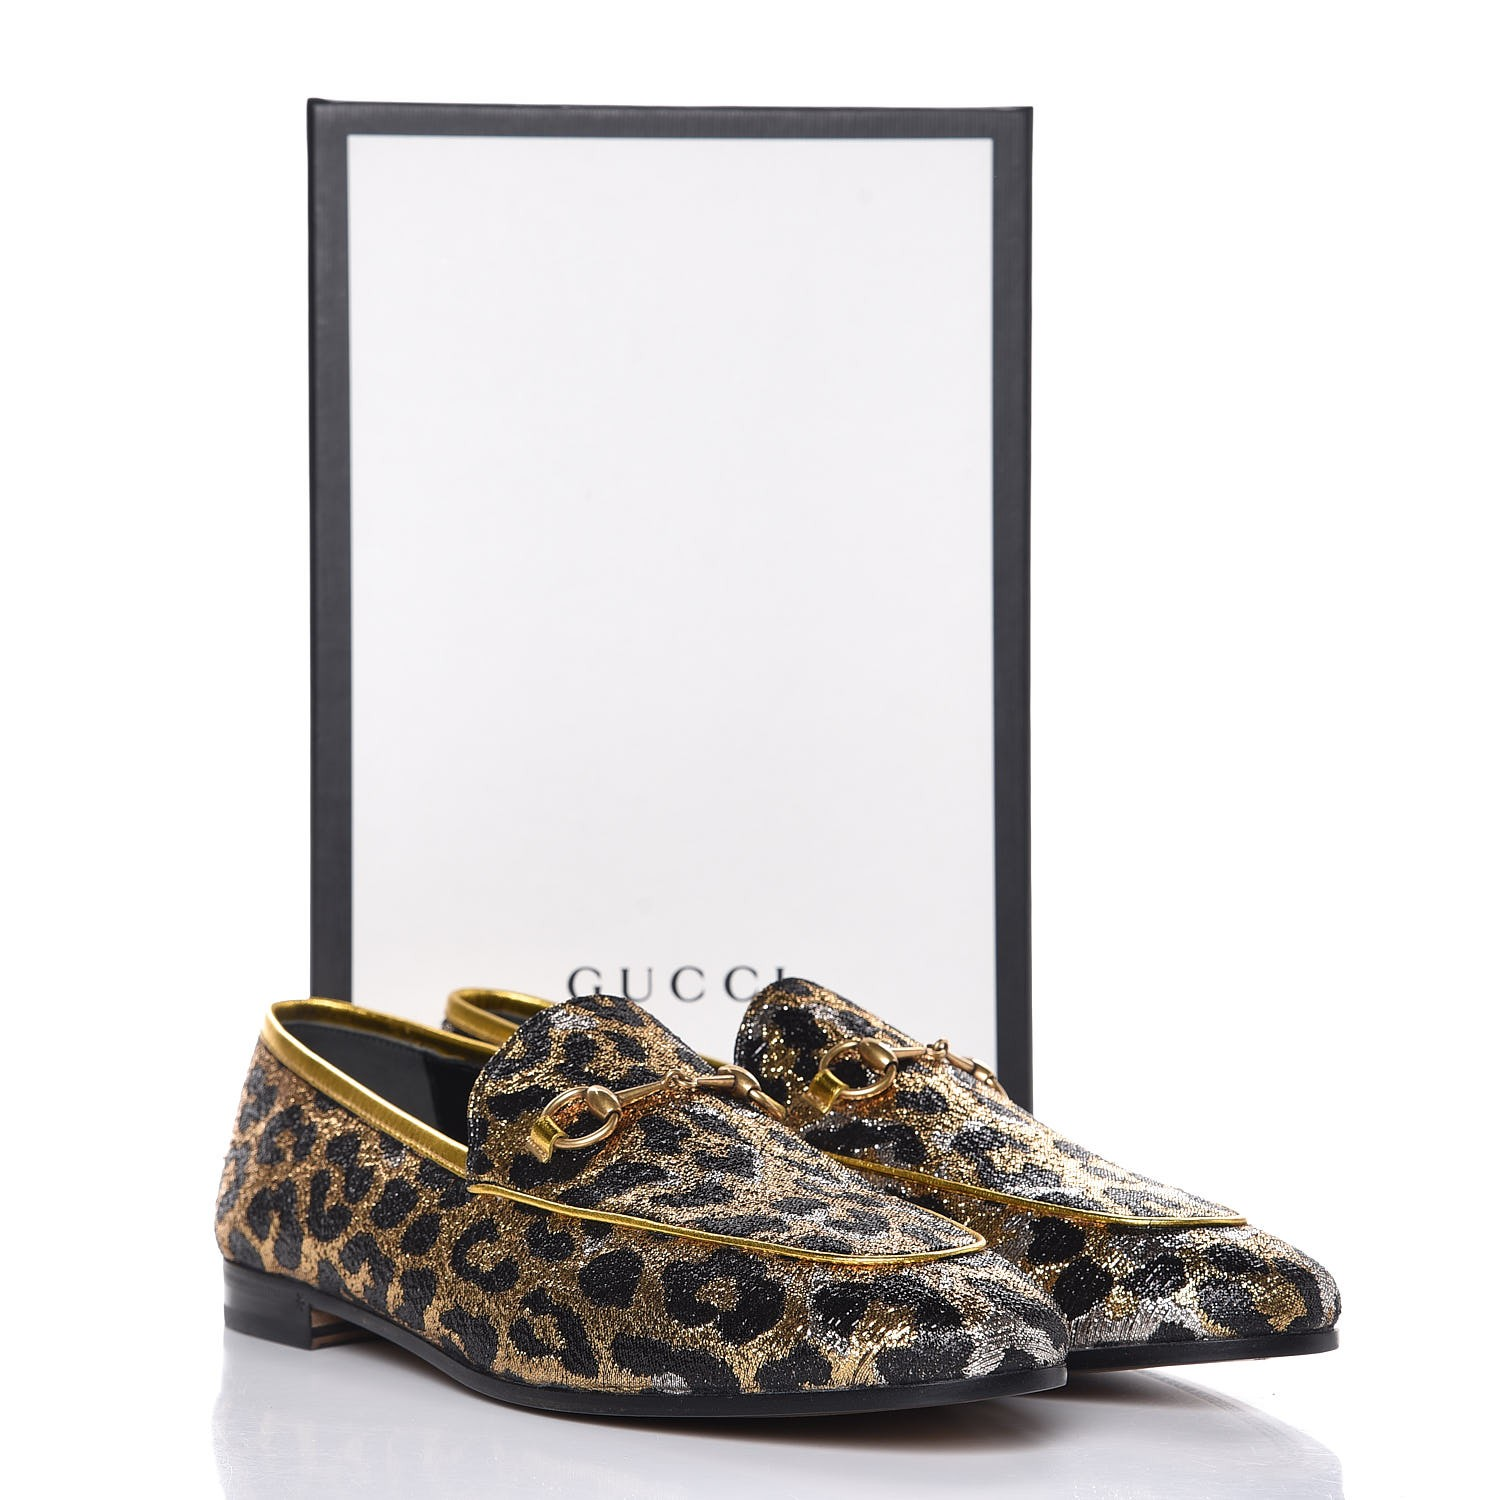 532ad6756c6 GUCCI Leopard Print Jacquard Horsebit Jordaan Loafers 41 Gold. Empty.  Pinch Zoom